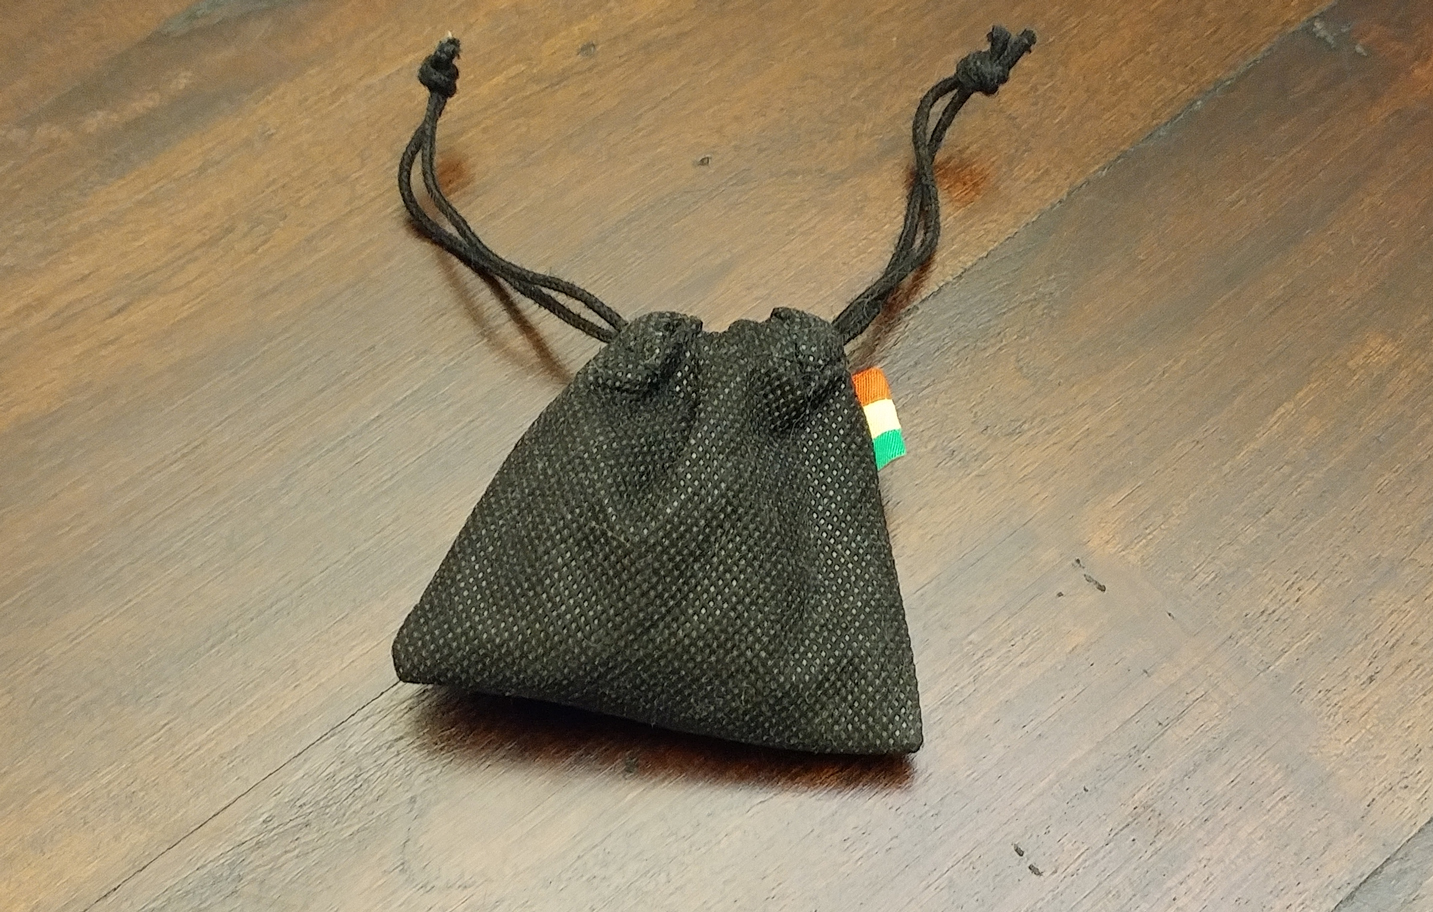 House of Marley Nesta In-Ear Headphones Travel Stash Bag